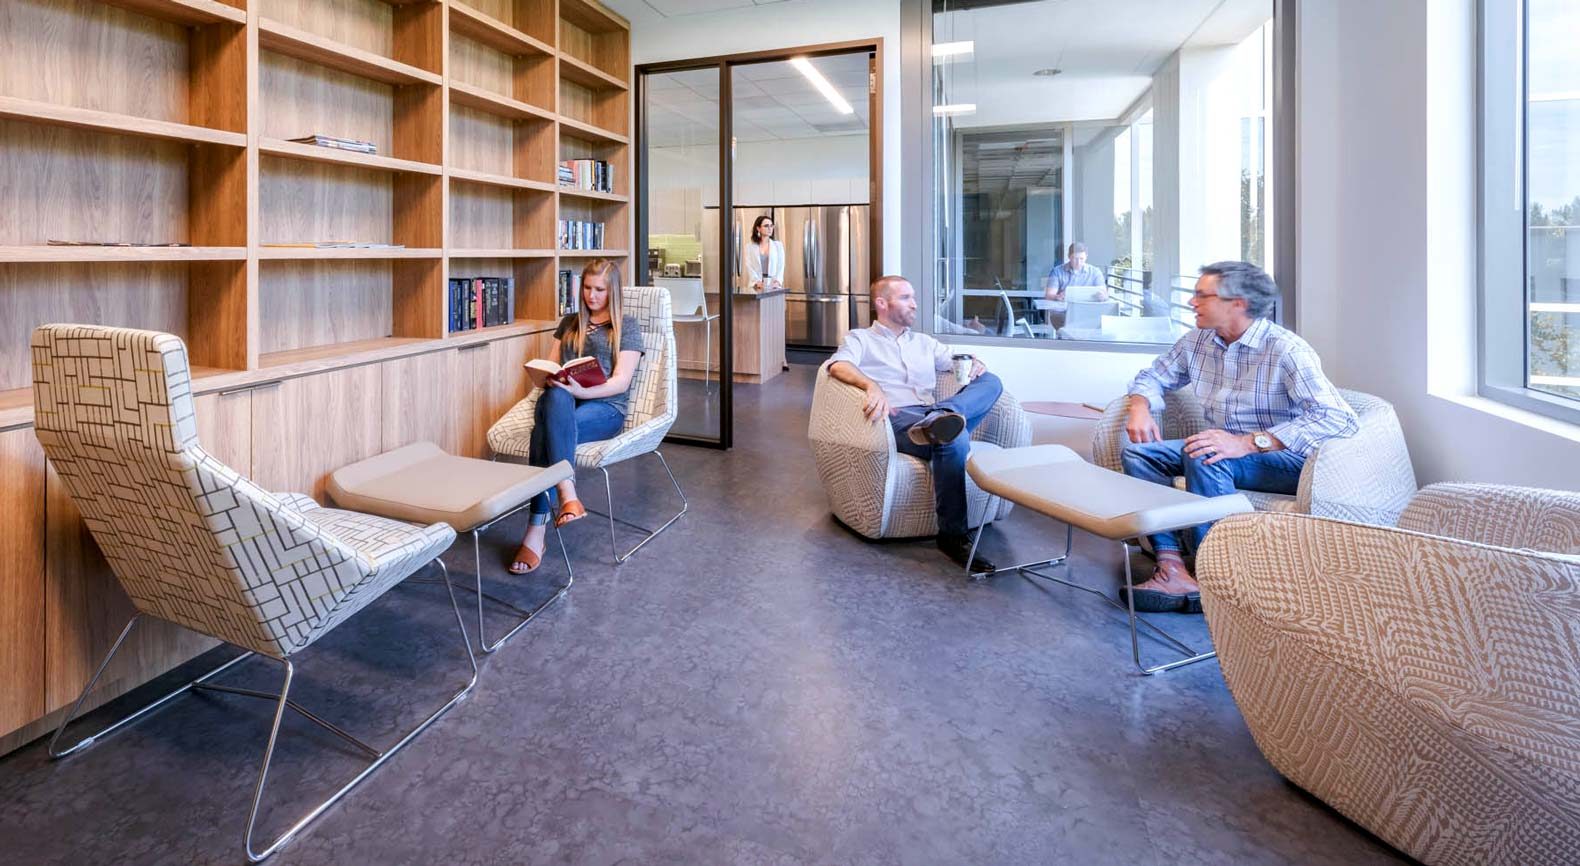 office design to attract and retain talent